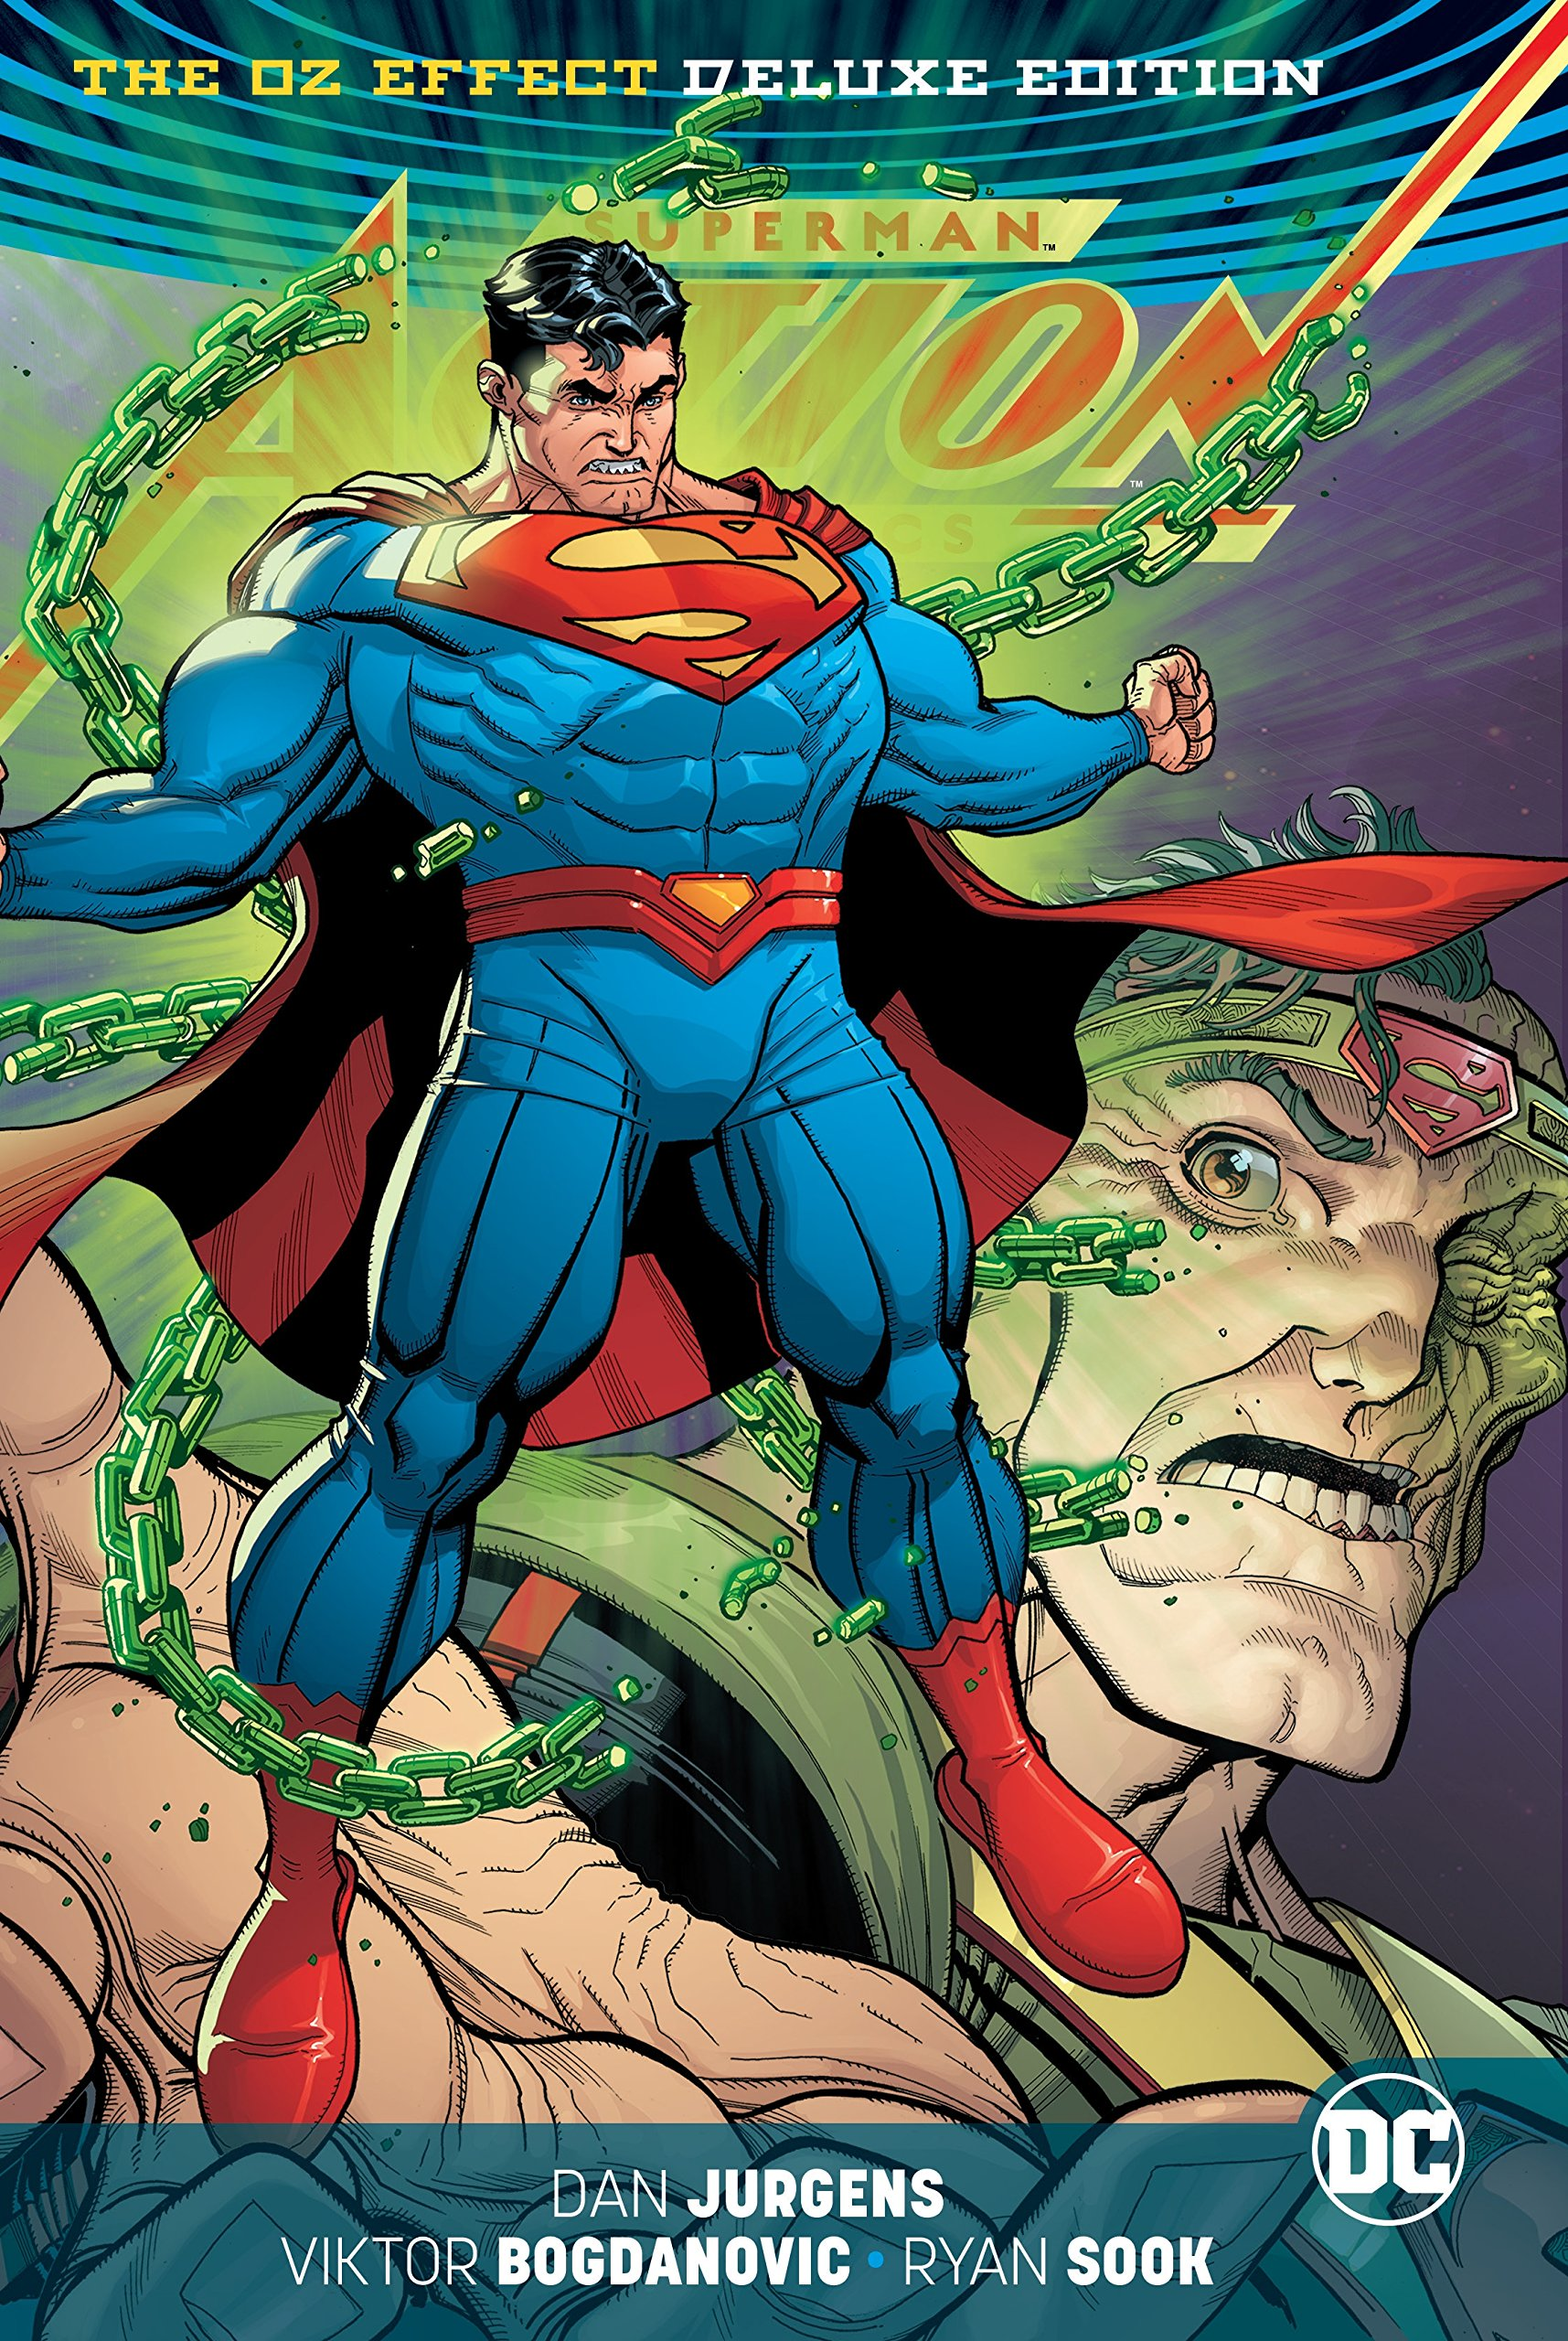 Superman - Action Comics: The Oz Effect Deluxe Edition ebook